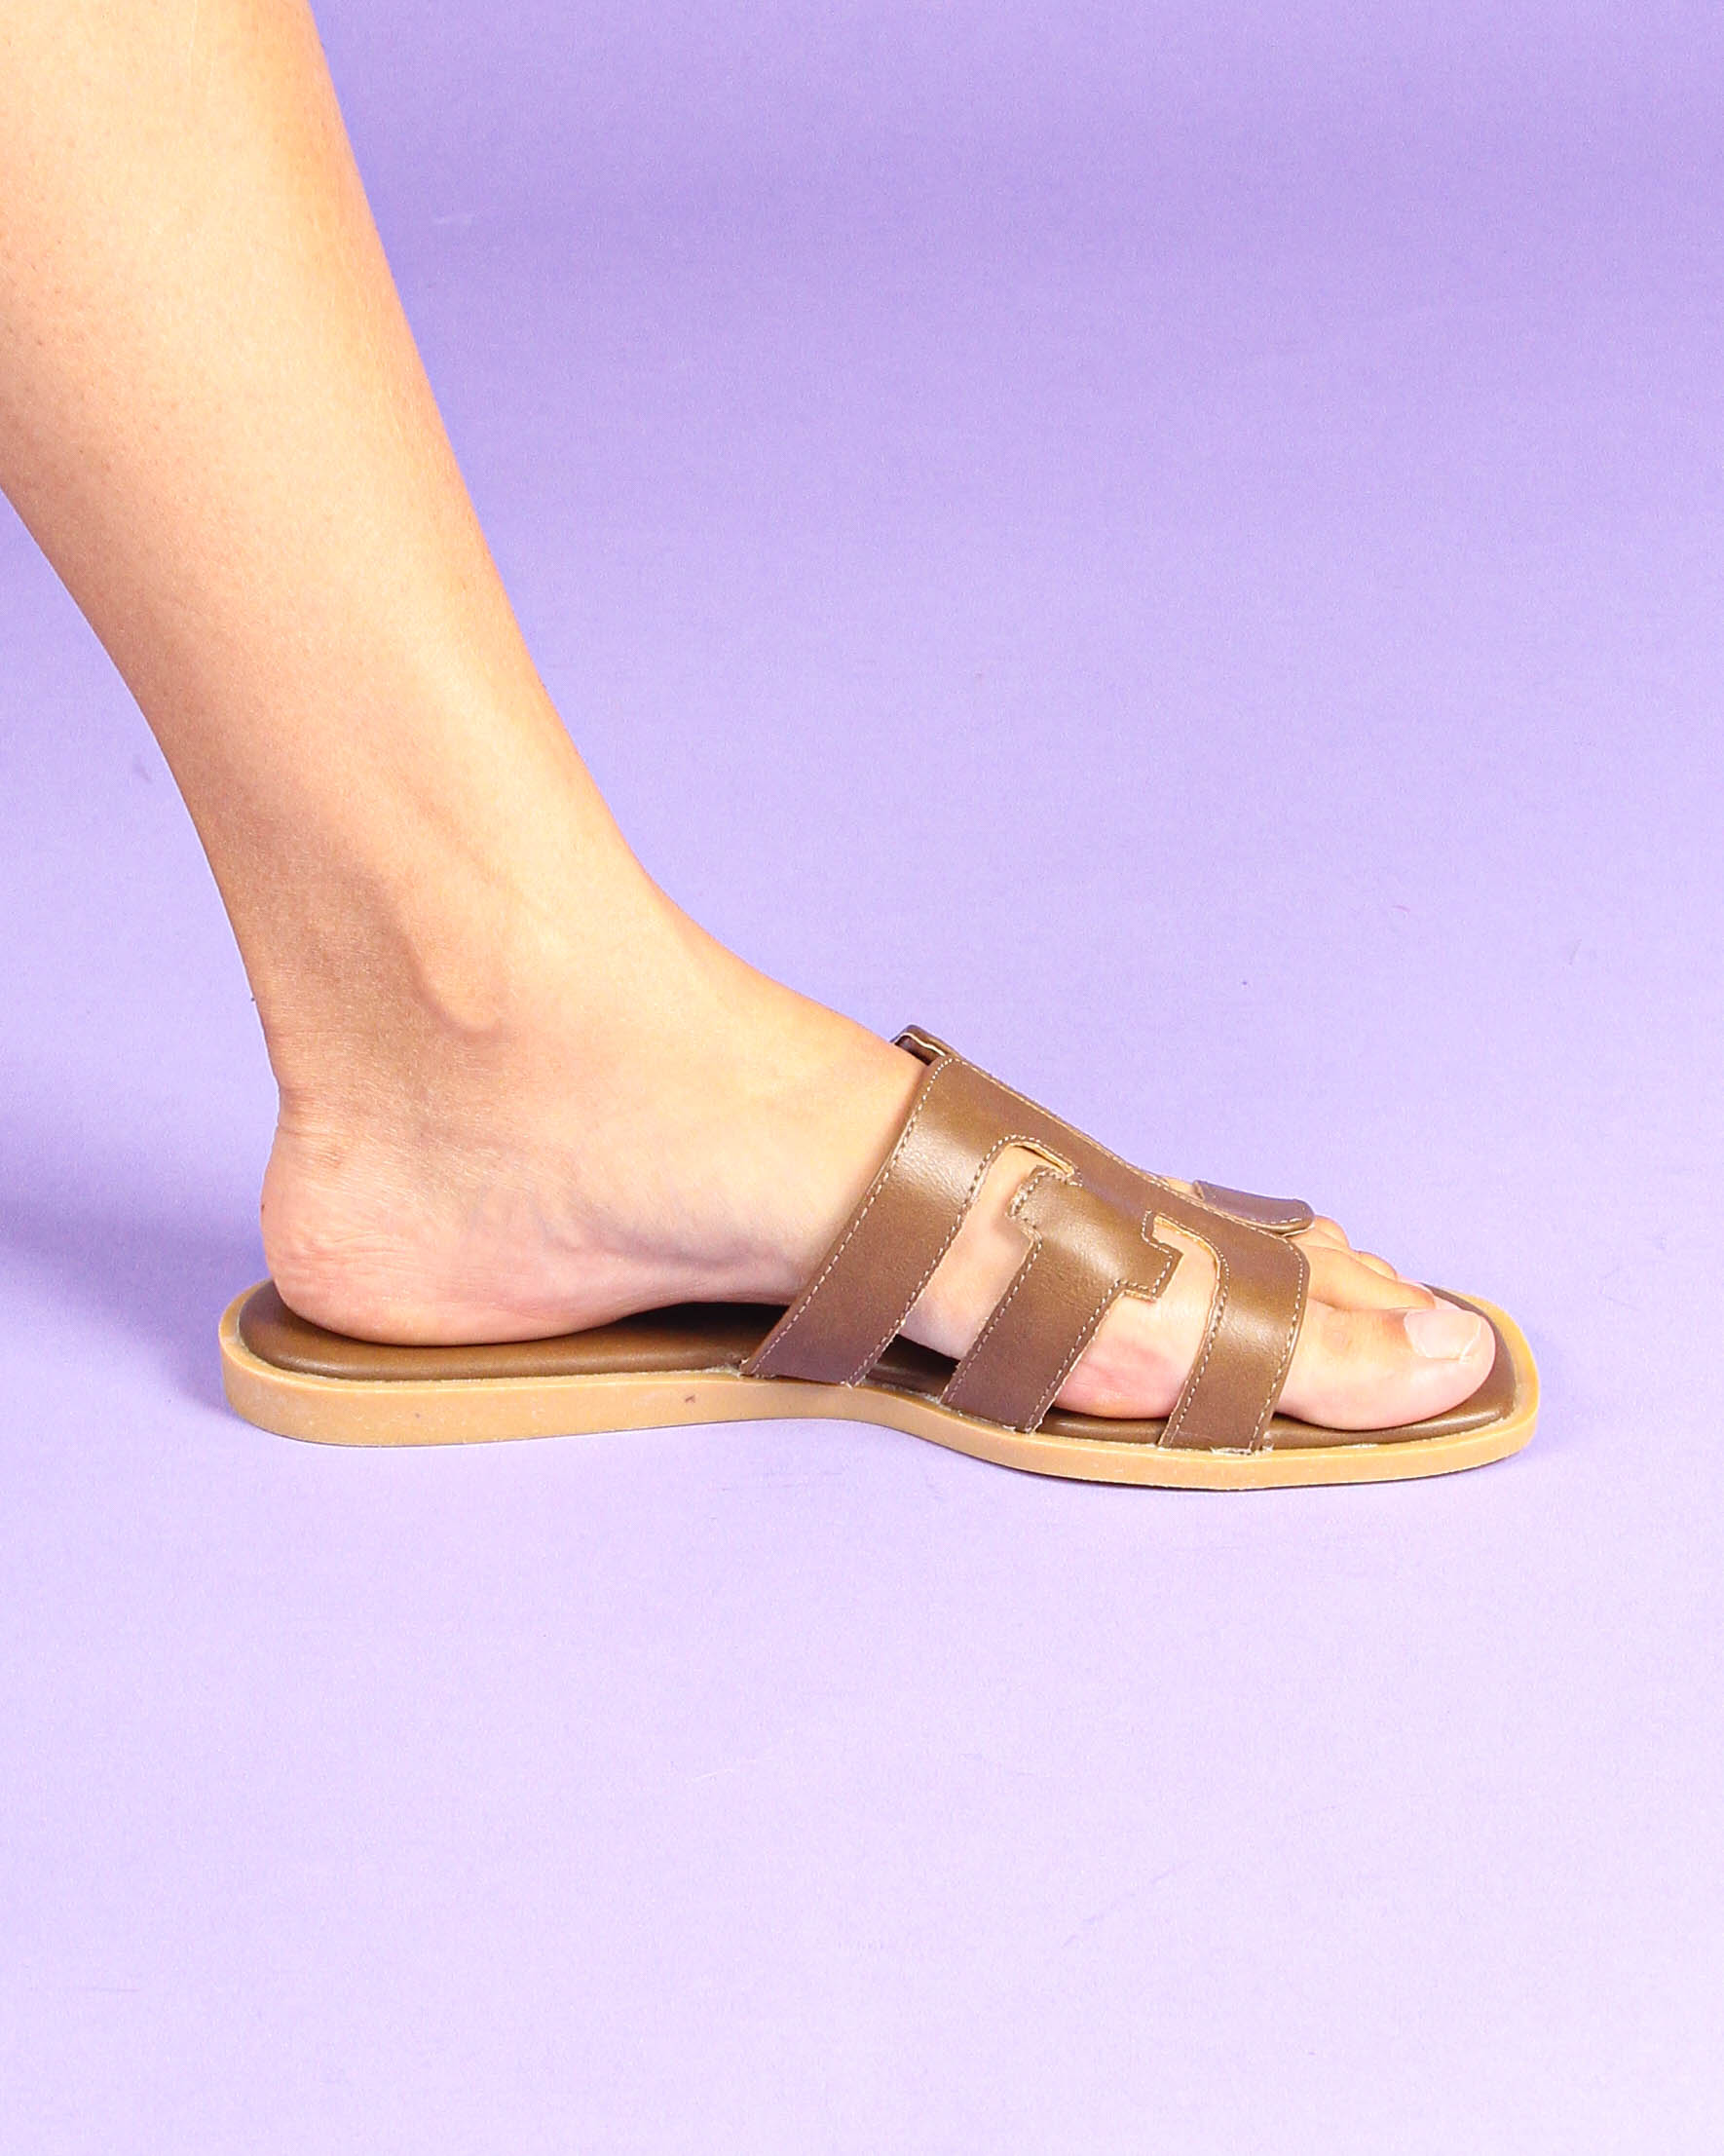 T-Bar Sandals in Taupe